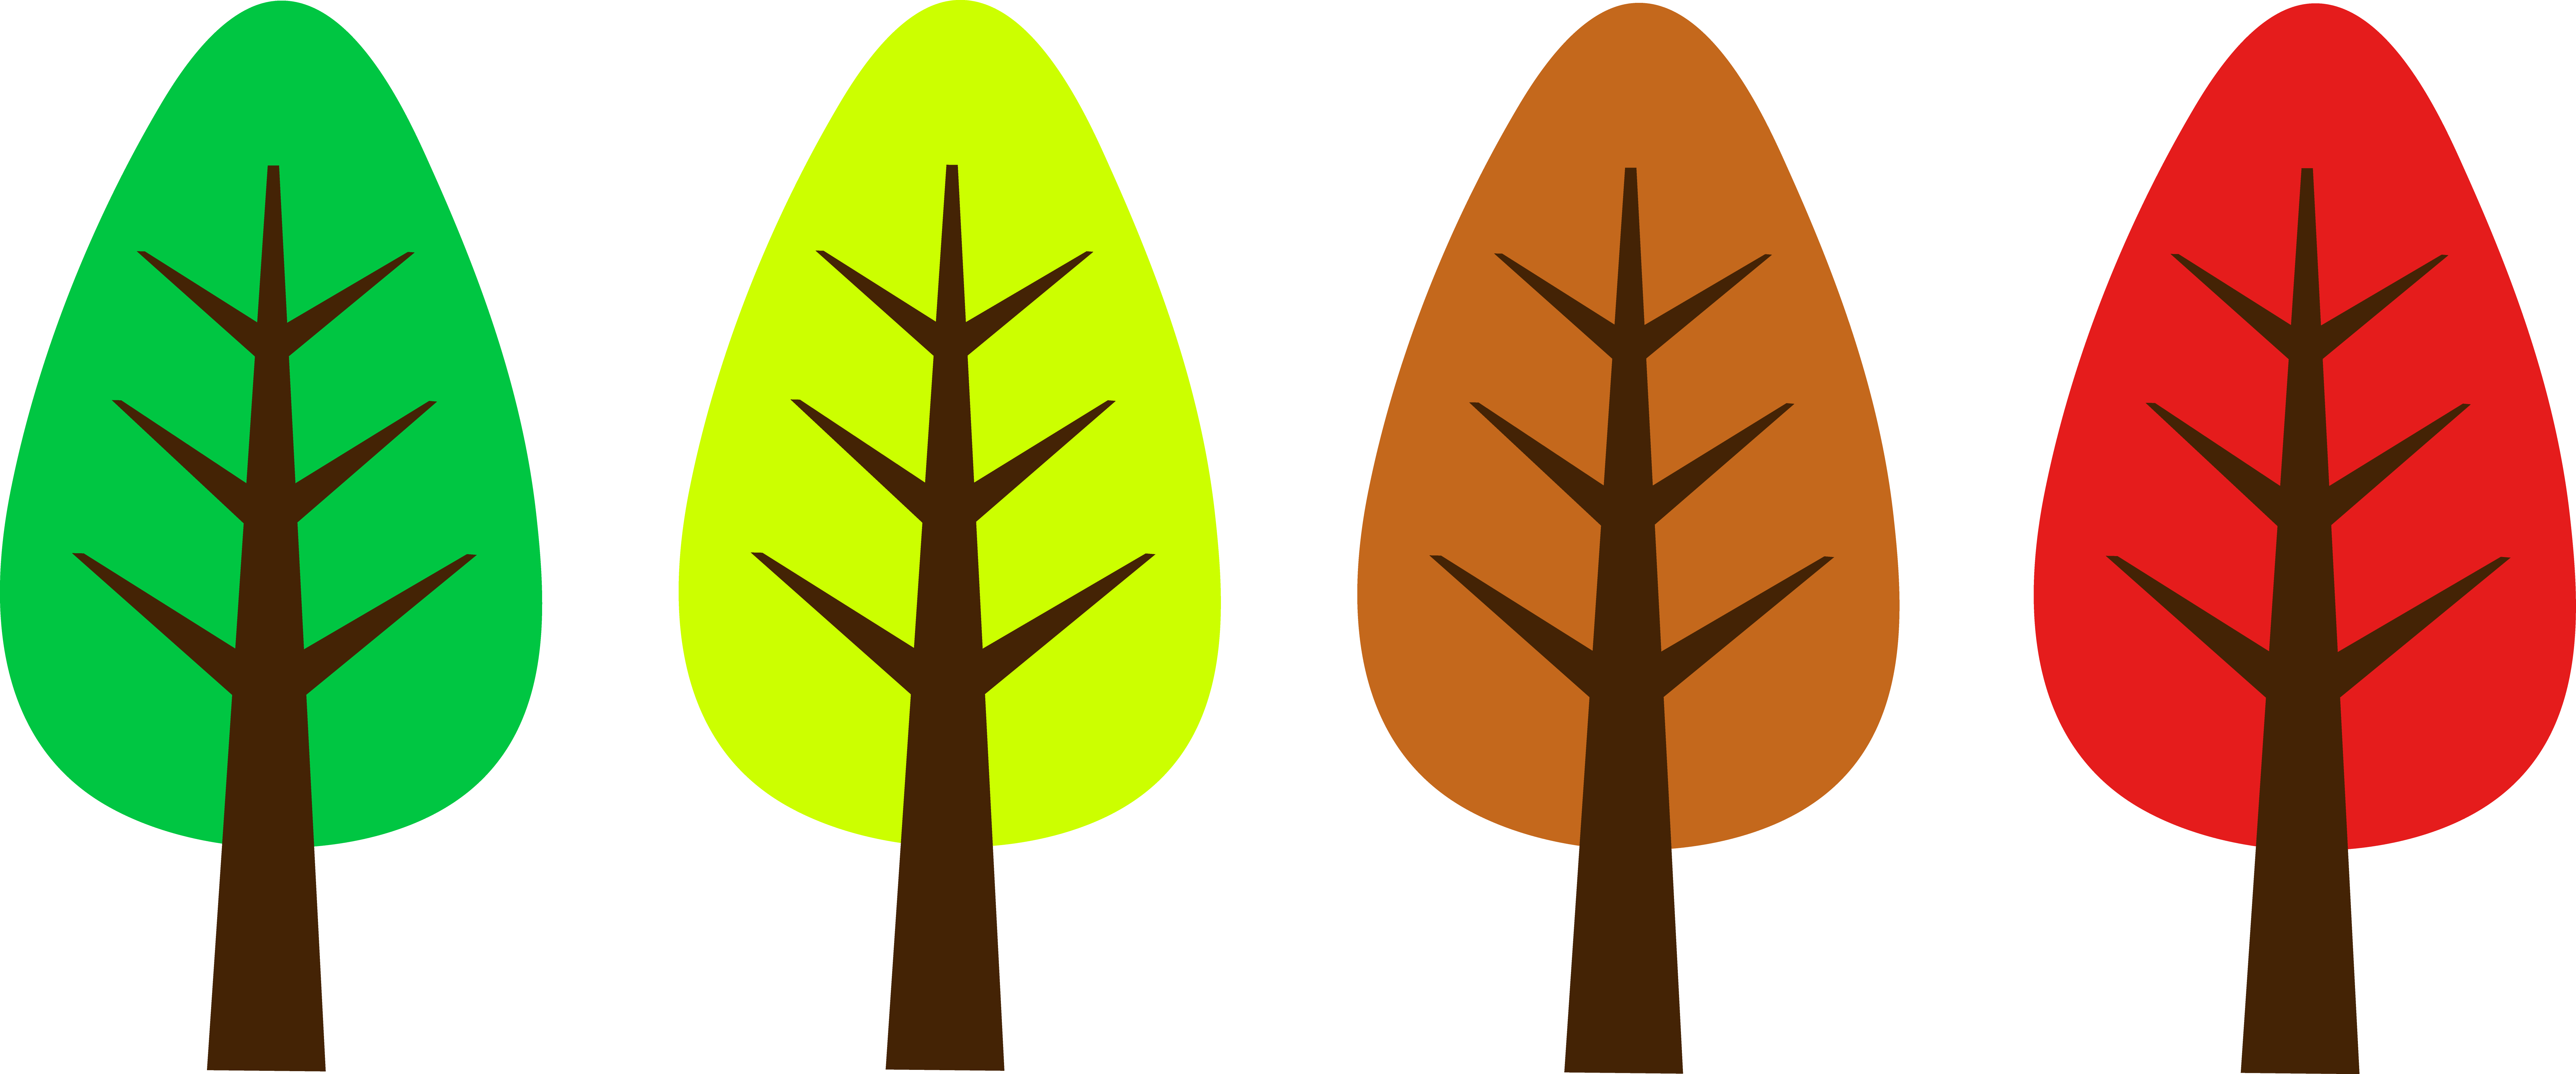 Technology tree clipart image freeuse stock Cute Simple Tree Designs - Free Clip Art image freeuse stock